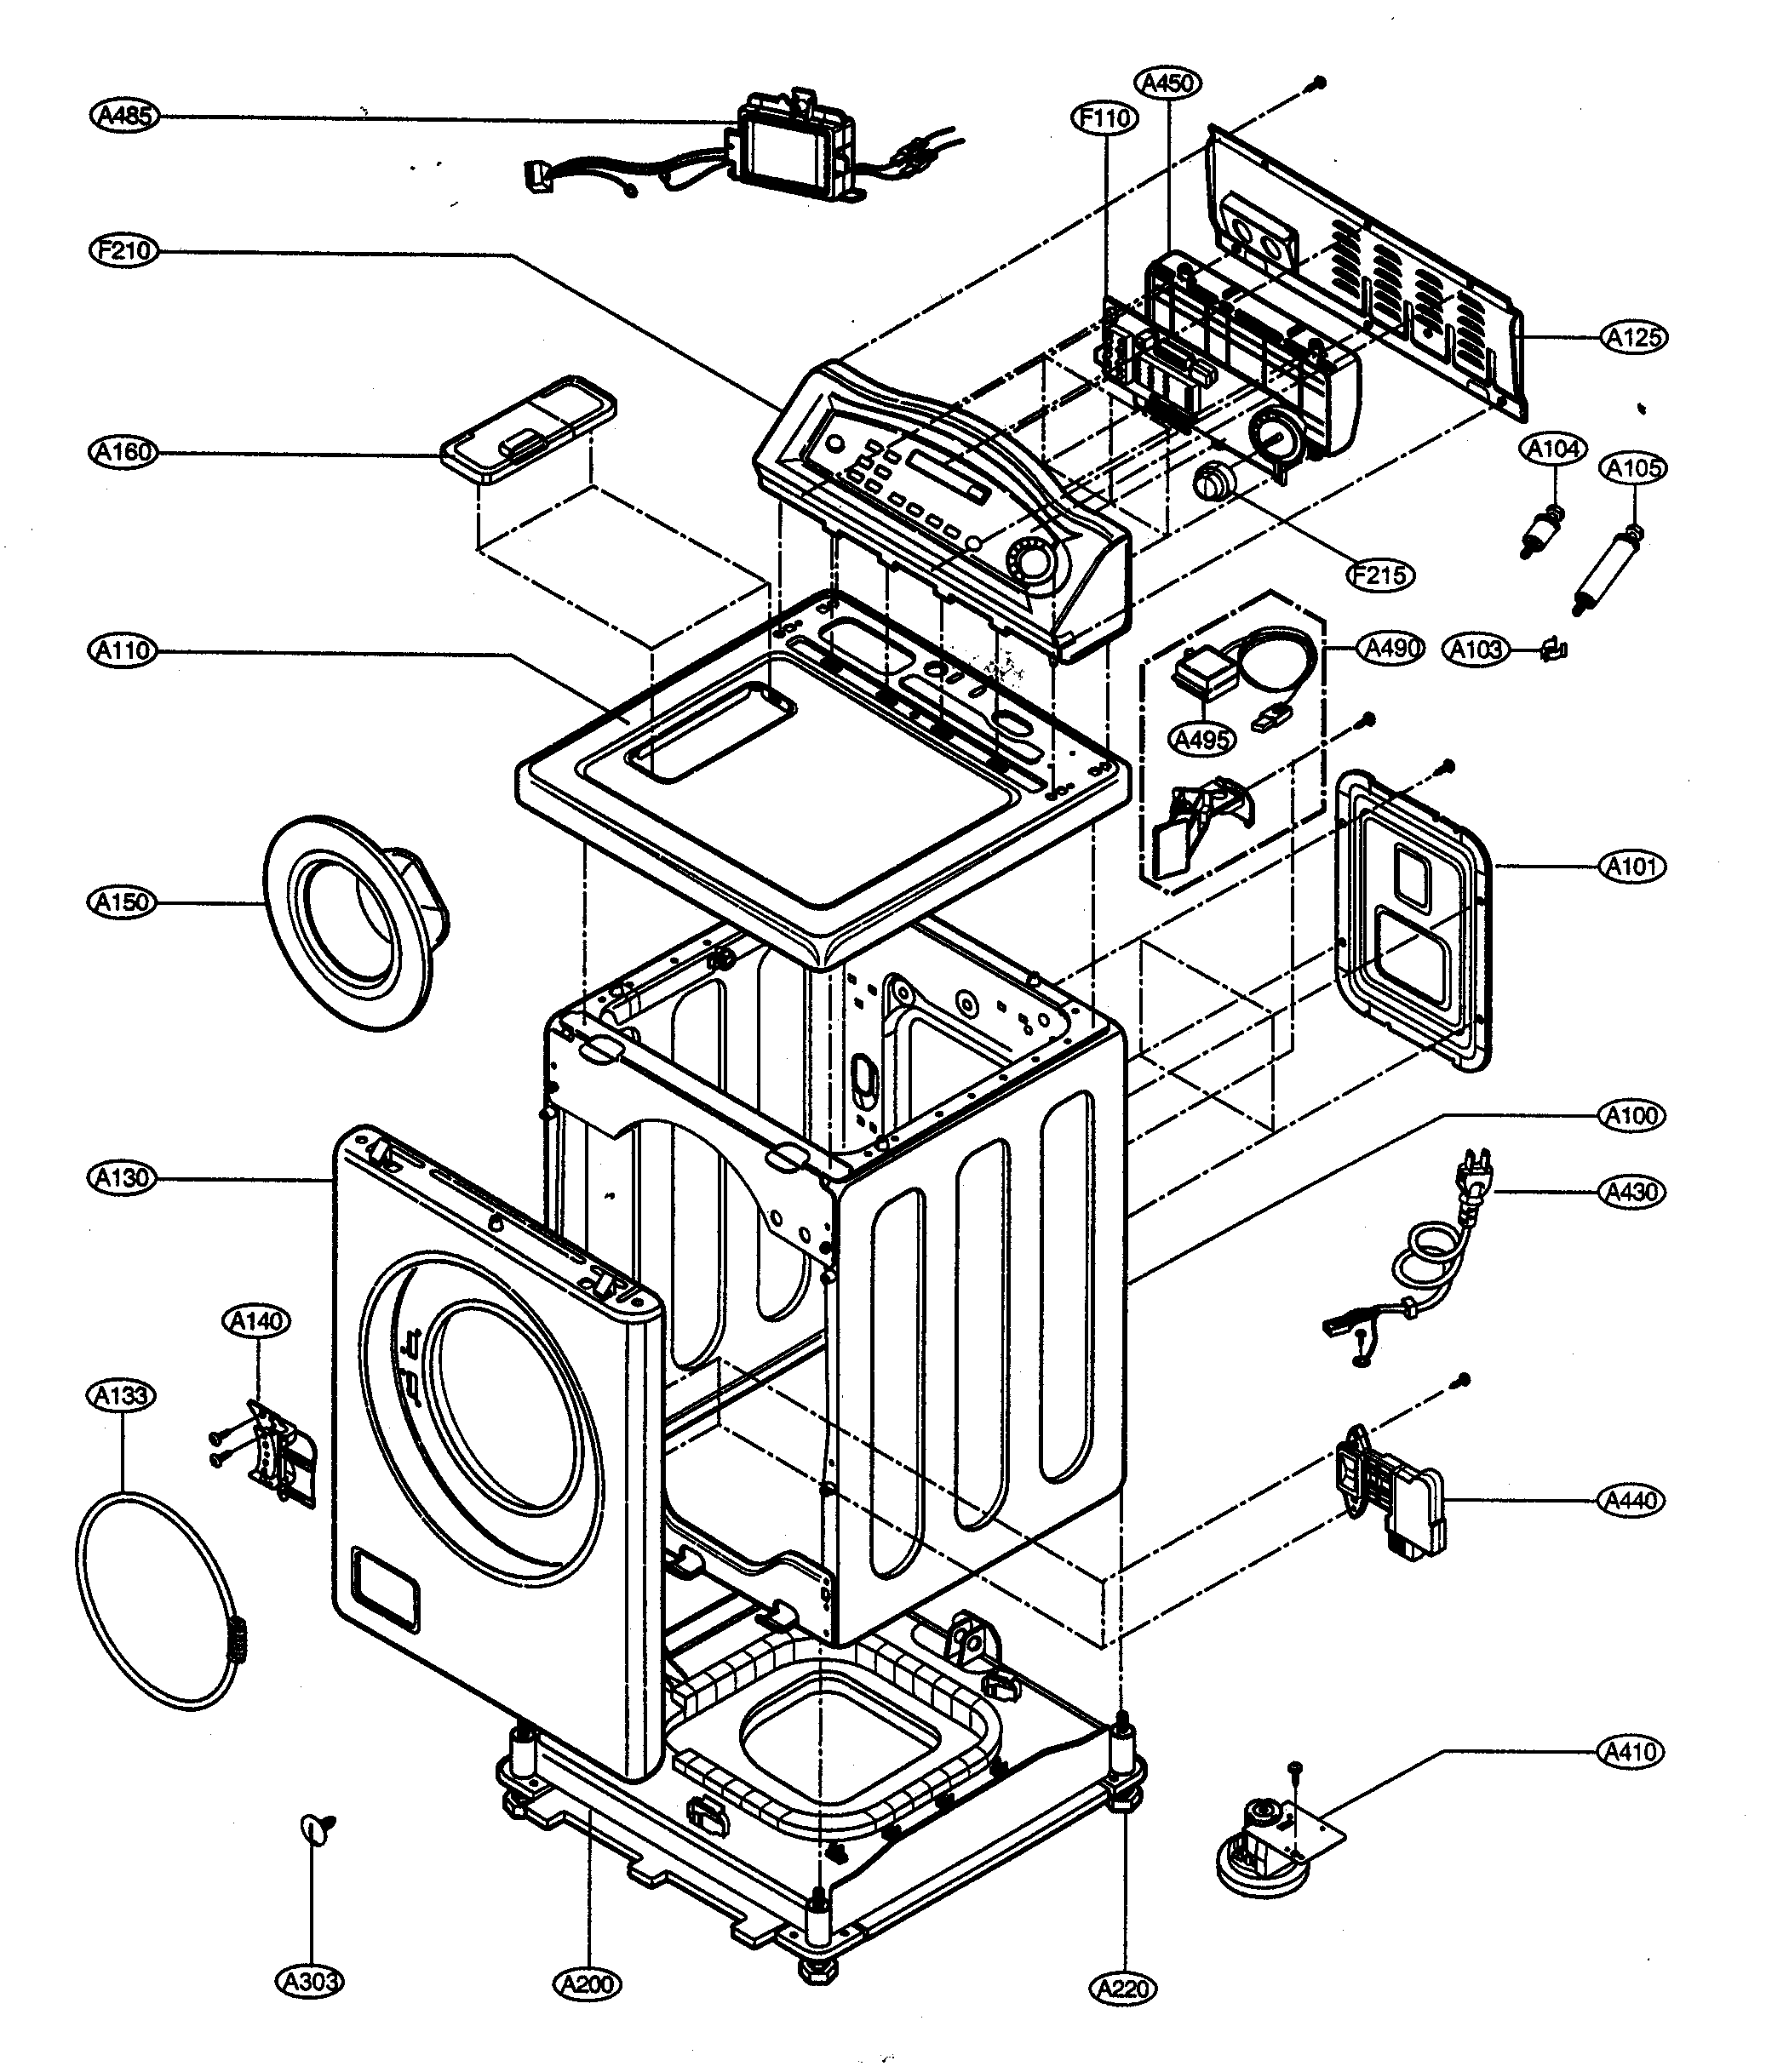 Ford Tow Package Wiring Diagram. Ford. Auto Wiring Diagram